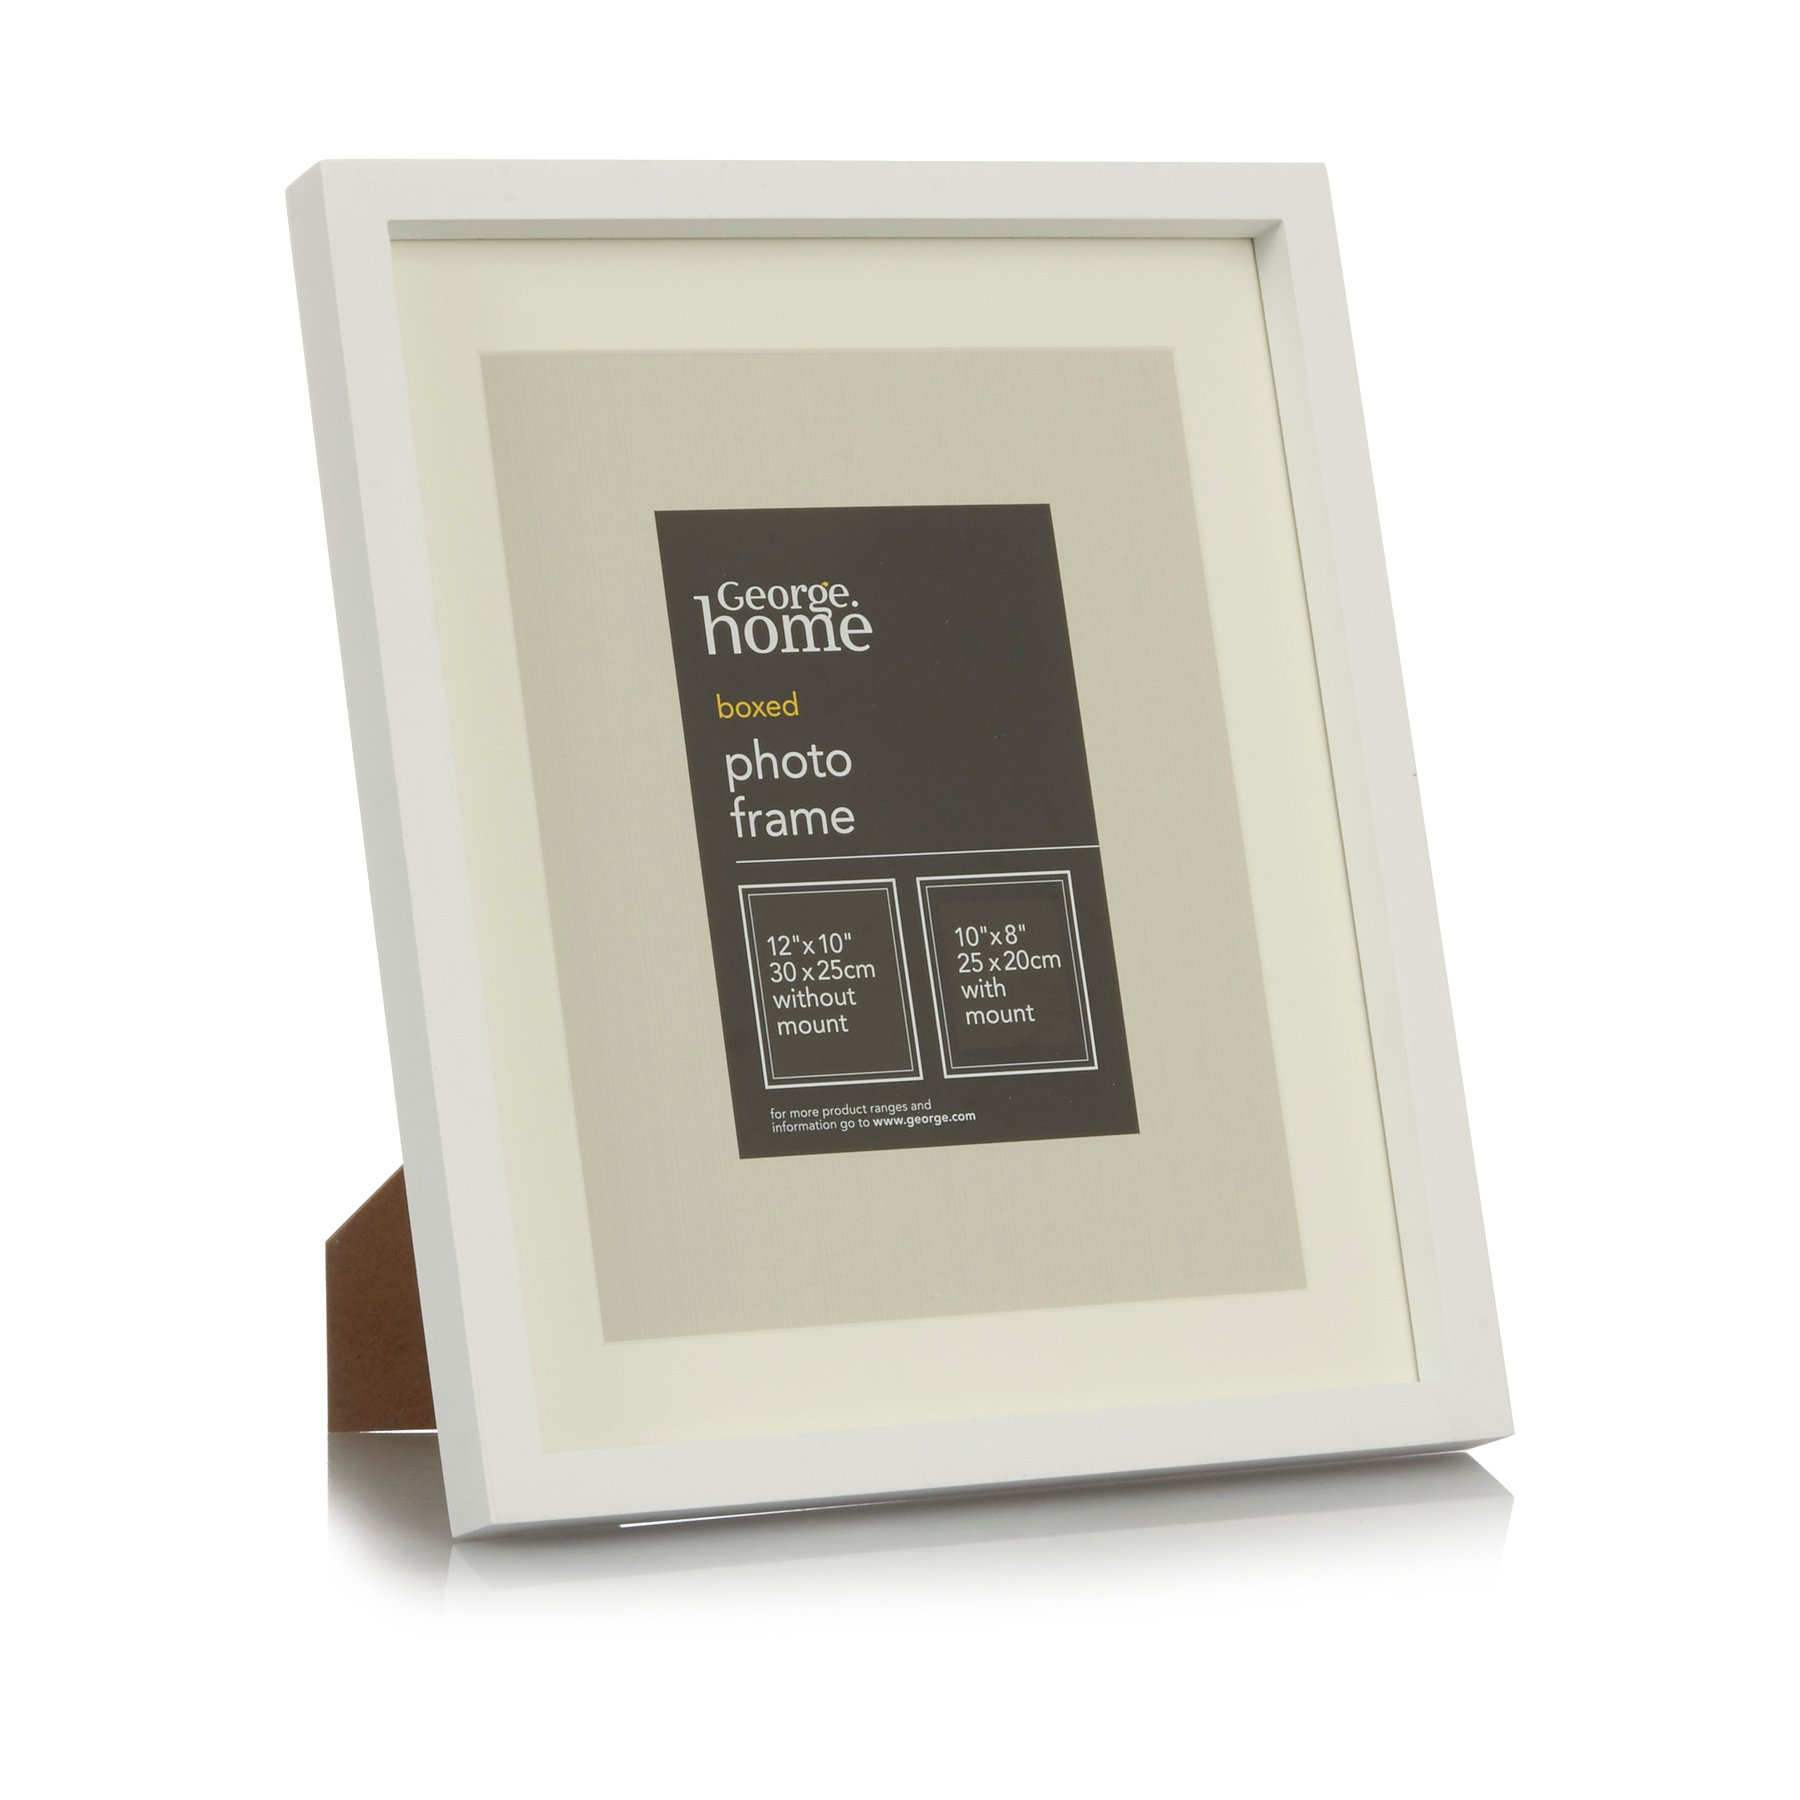 George Home White Boxed Photo Frame 12 X 10 Inch Home Garden